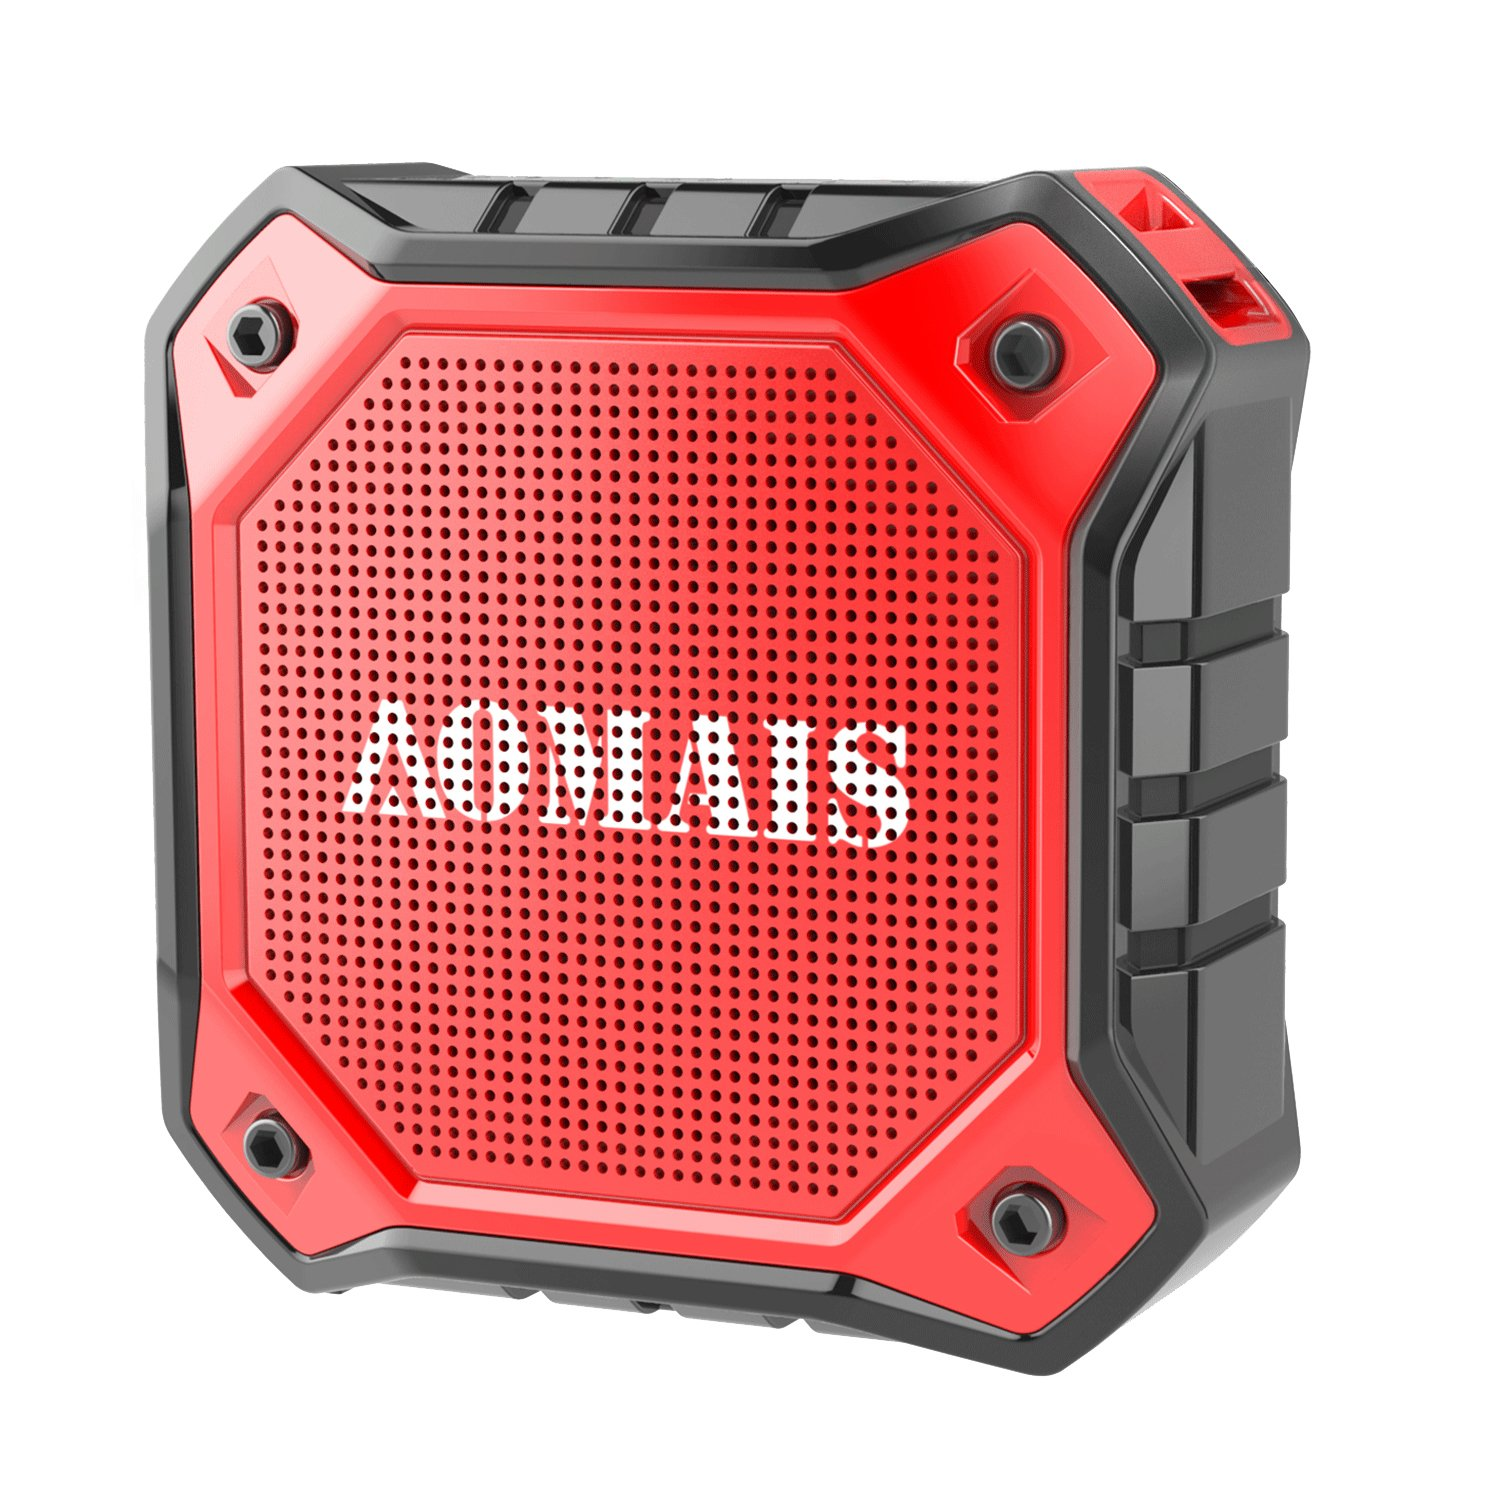 AOMAIS Ultra Portable Wireless Bluetooth Speakers with 8W Output Loud Sound, Waterproof IPX7 Floating, Stereo Pairing, for iPhone7/iPod/iPad/Samsung/Cell Phones/Tablets/PC/Laptop (Black) JWH AS-F3-Black